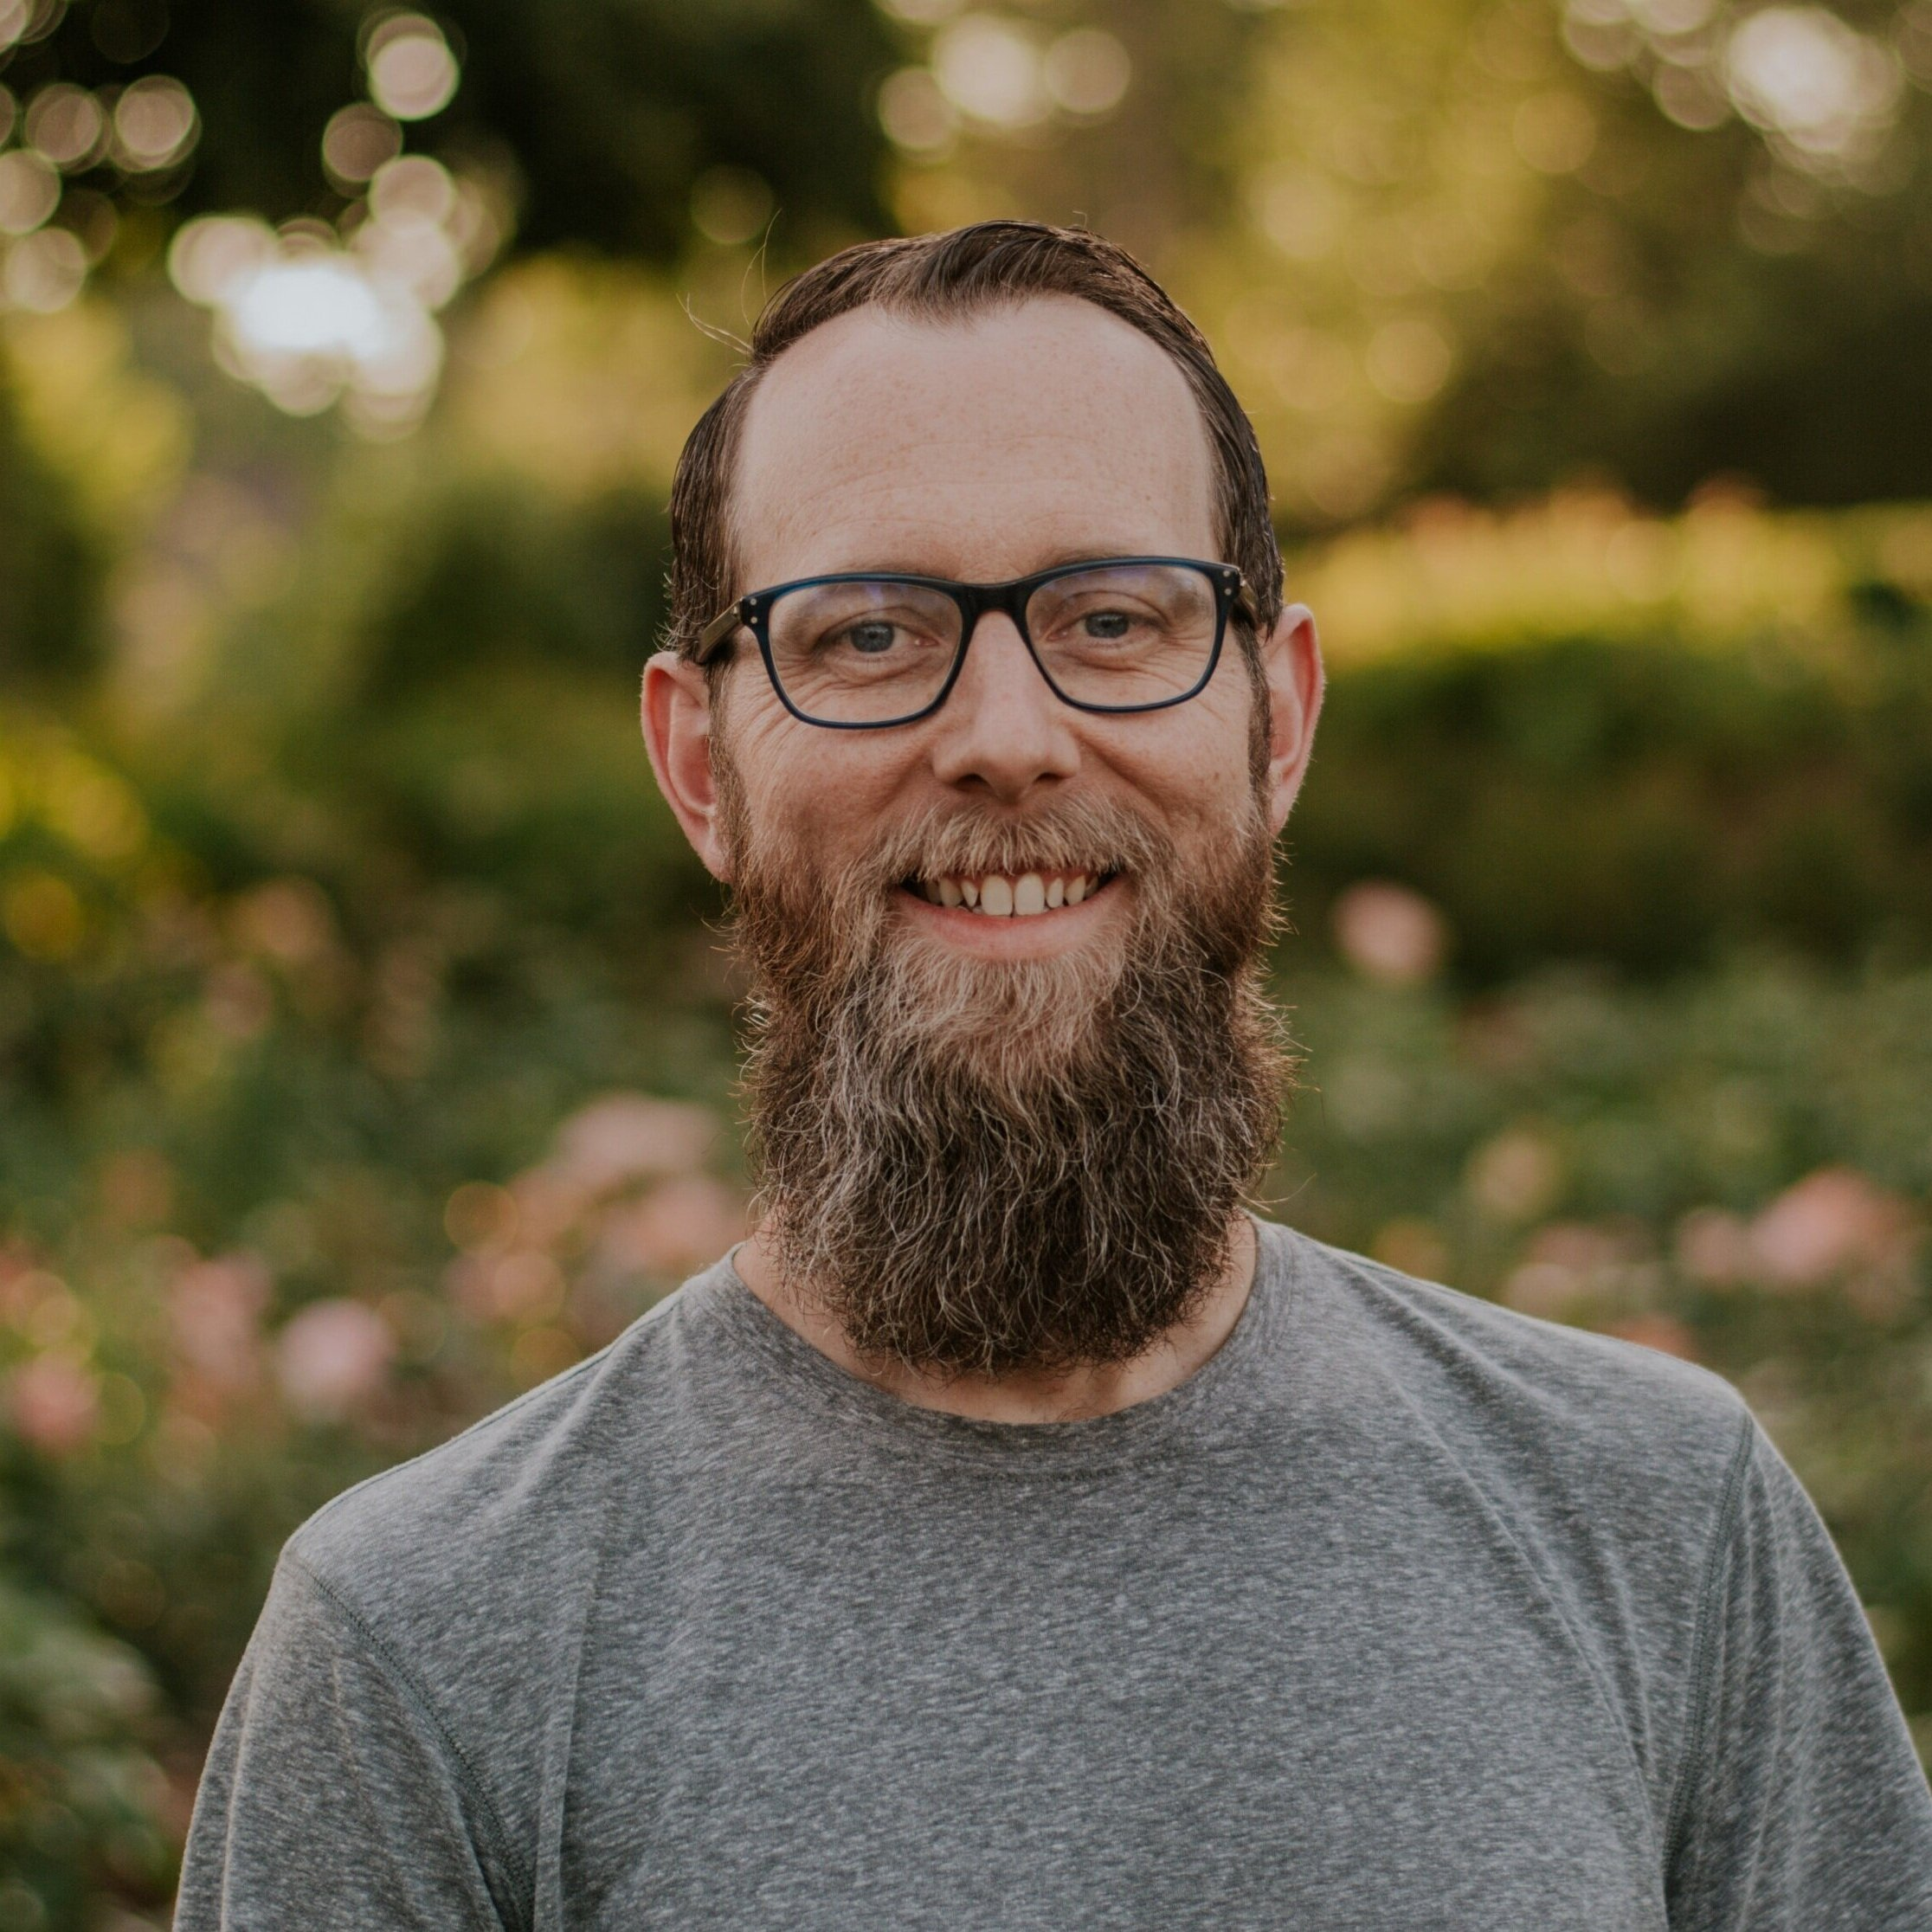 Matt Boyd - Matt is the lead planting pastor of Sojourn Church. Prior to planting Sojourn he served on the Directional Team for the Table Network and spent a few years catalyzing church planting movements in S. Asia.